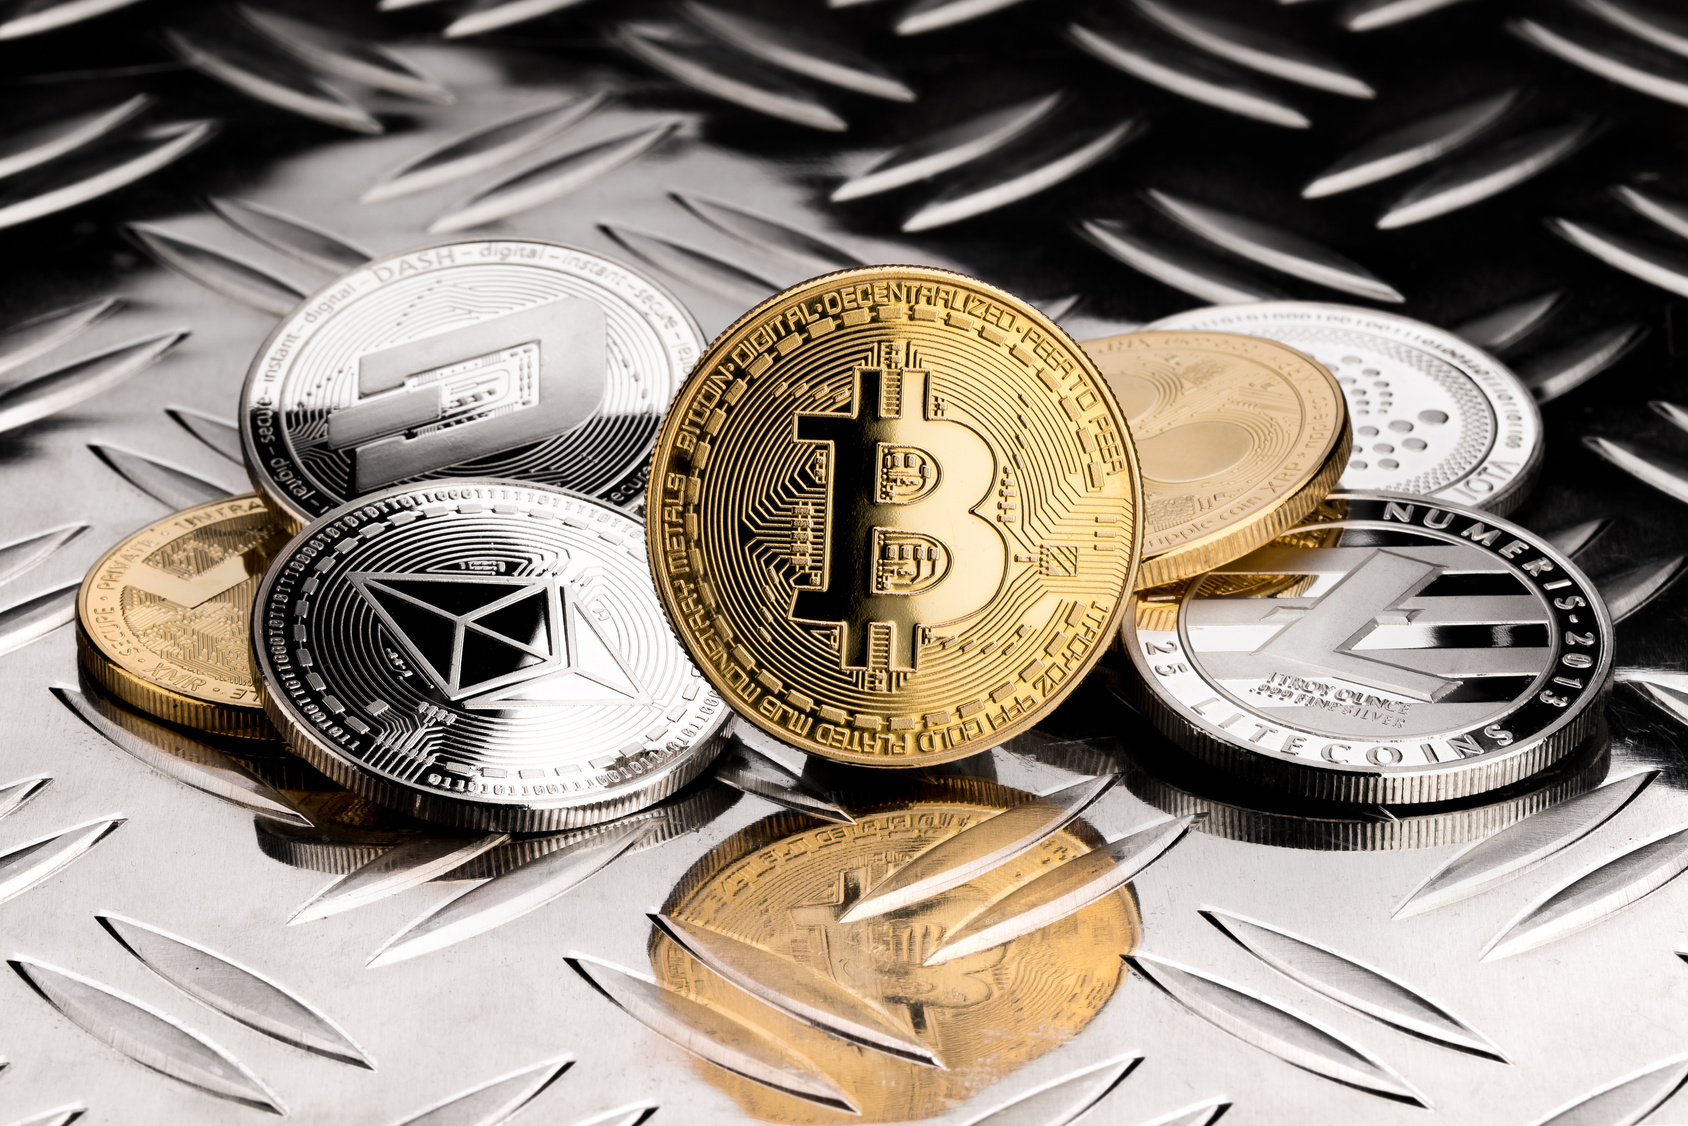 bronze crypto currency exchanges